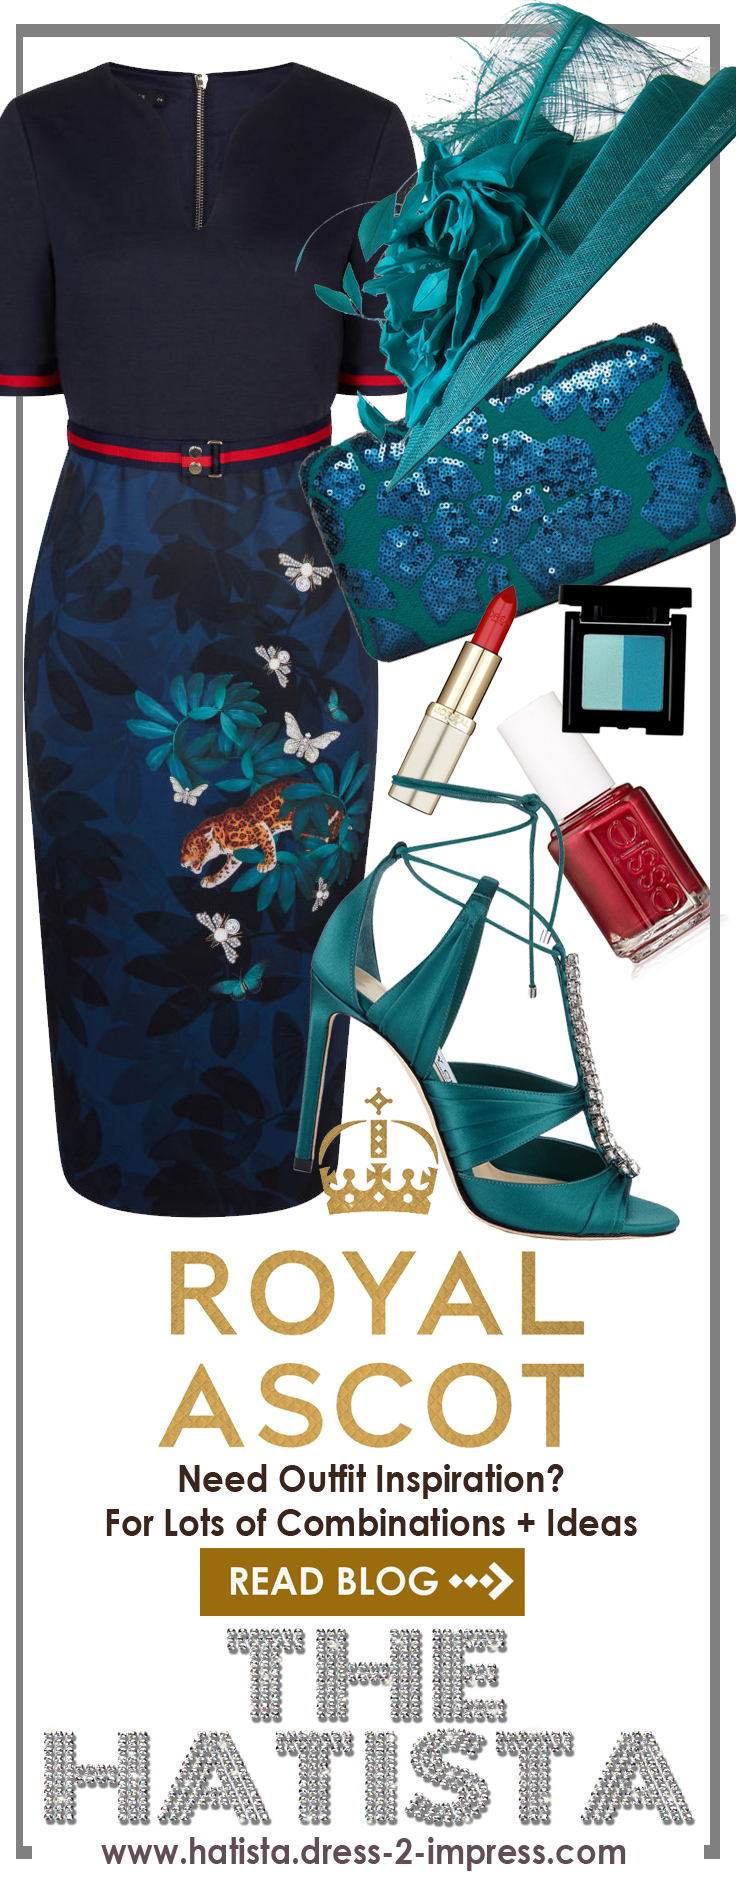 Royal Ascot outfit ideas. What to wear for Royal Ascot. Royal Ascot Style Guide. Royal Ascot Hats. Royal Ascot dresses. Hats for Royal Ascot. #royalascot #ootd #outfitideas